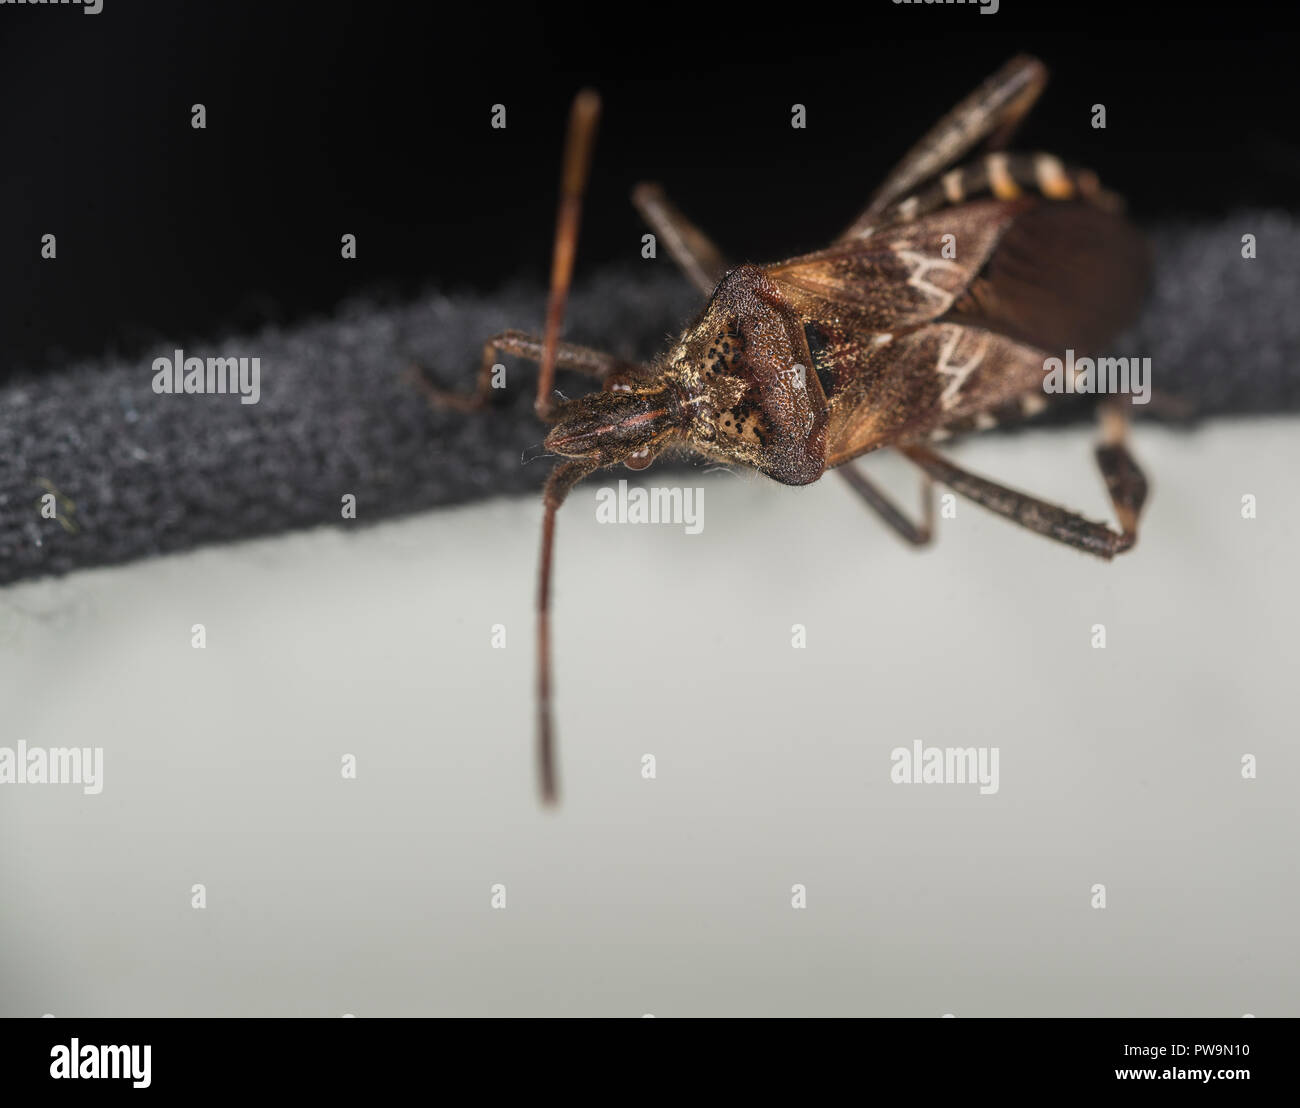 Western conifer seed bug on a lamp - Stock Image